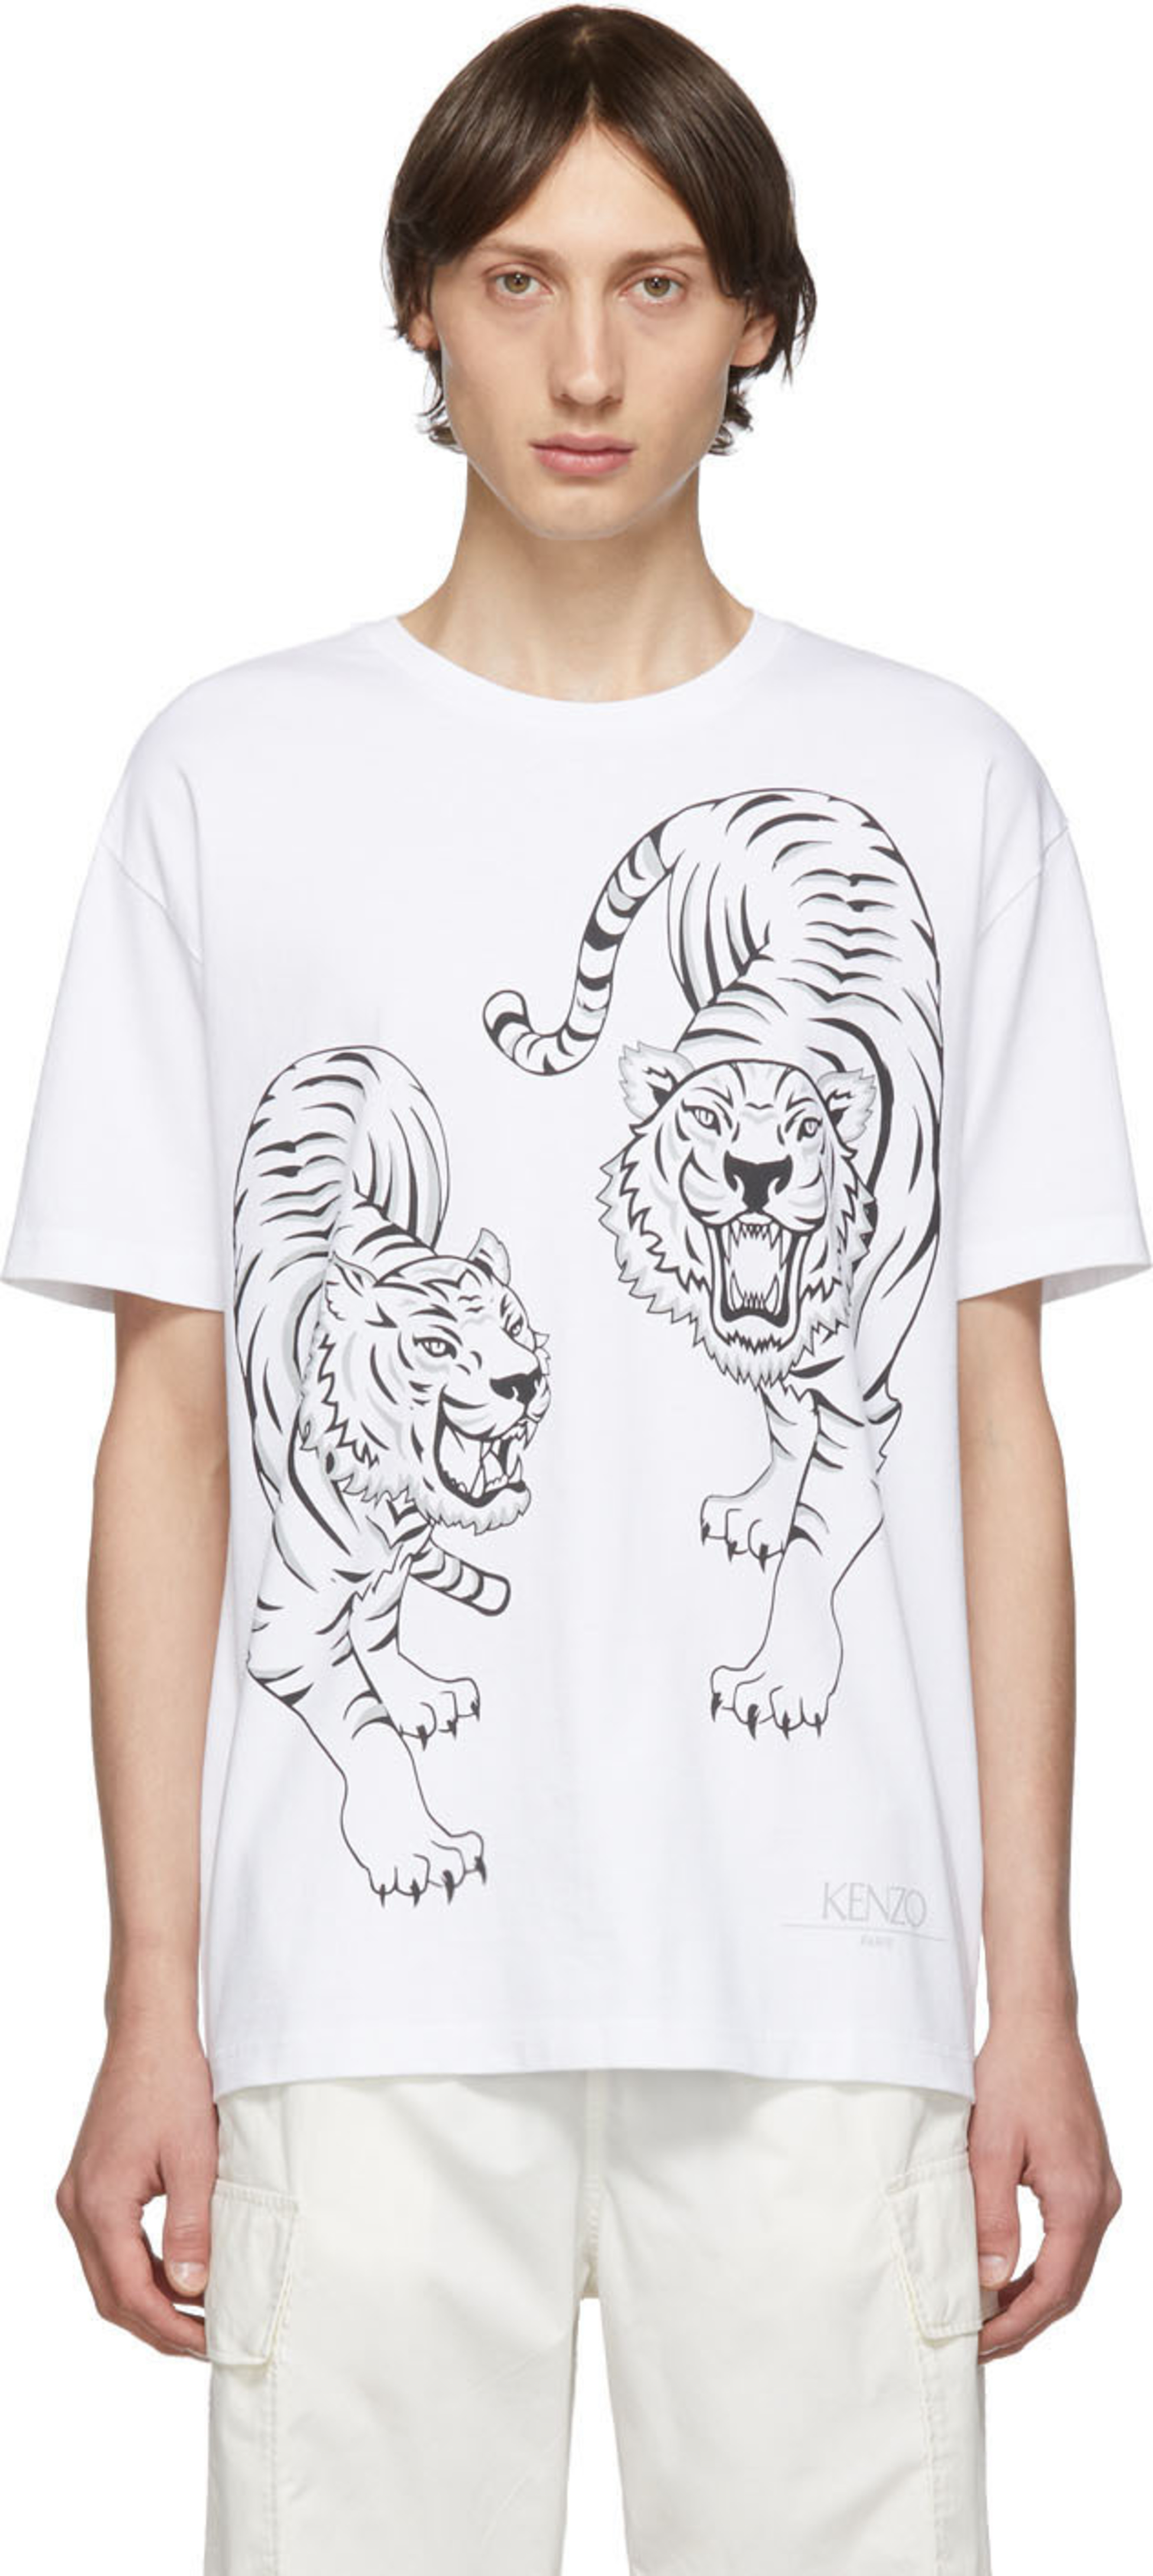 ce7f154488e Kenzo for Men SS19 Collection | SSENSE